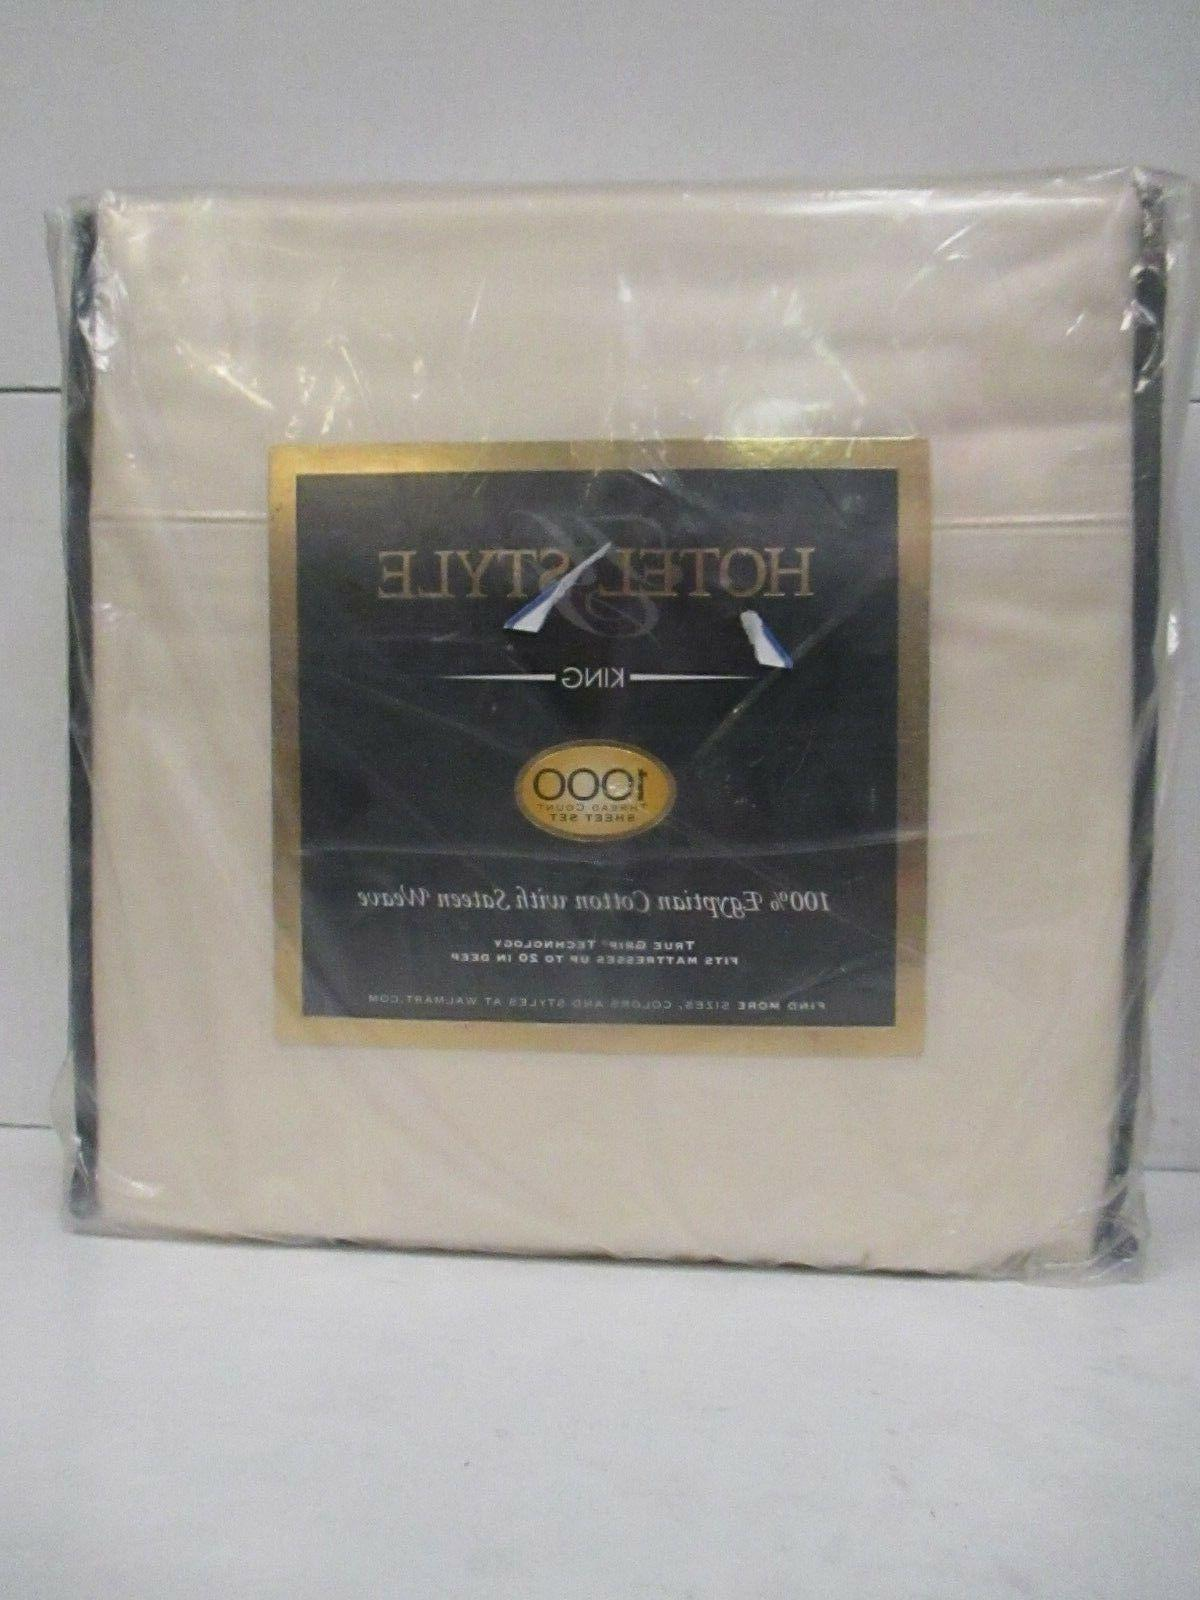 HOTEL STYLE KING SIZE 1000 THREAD COUNT SHEET SET - IVORY -